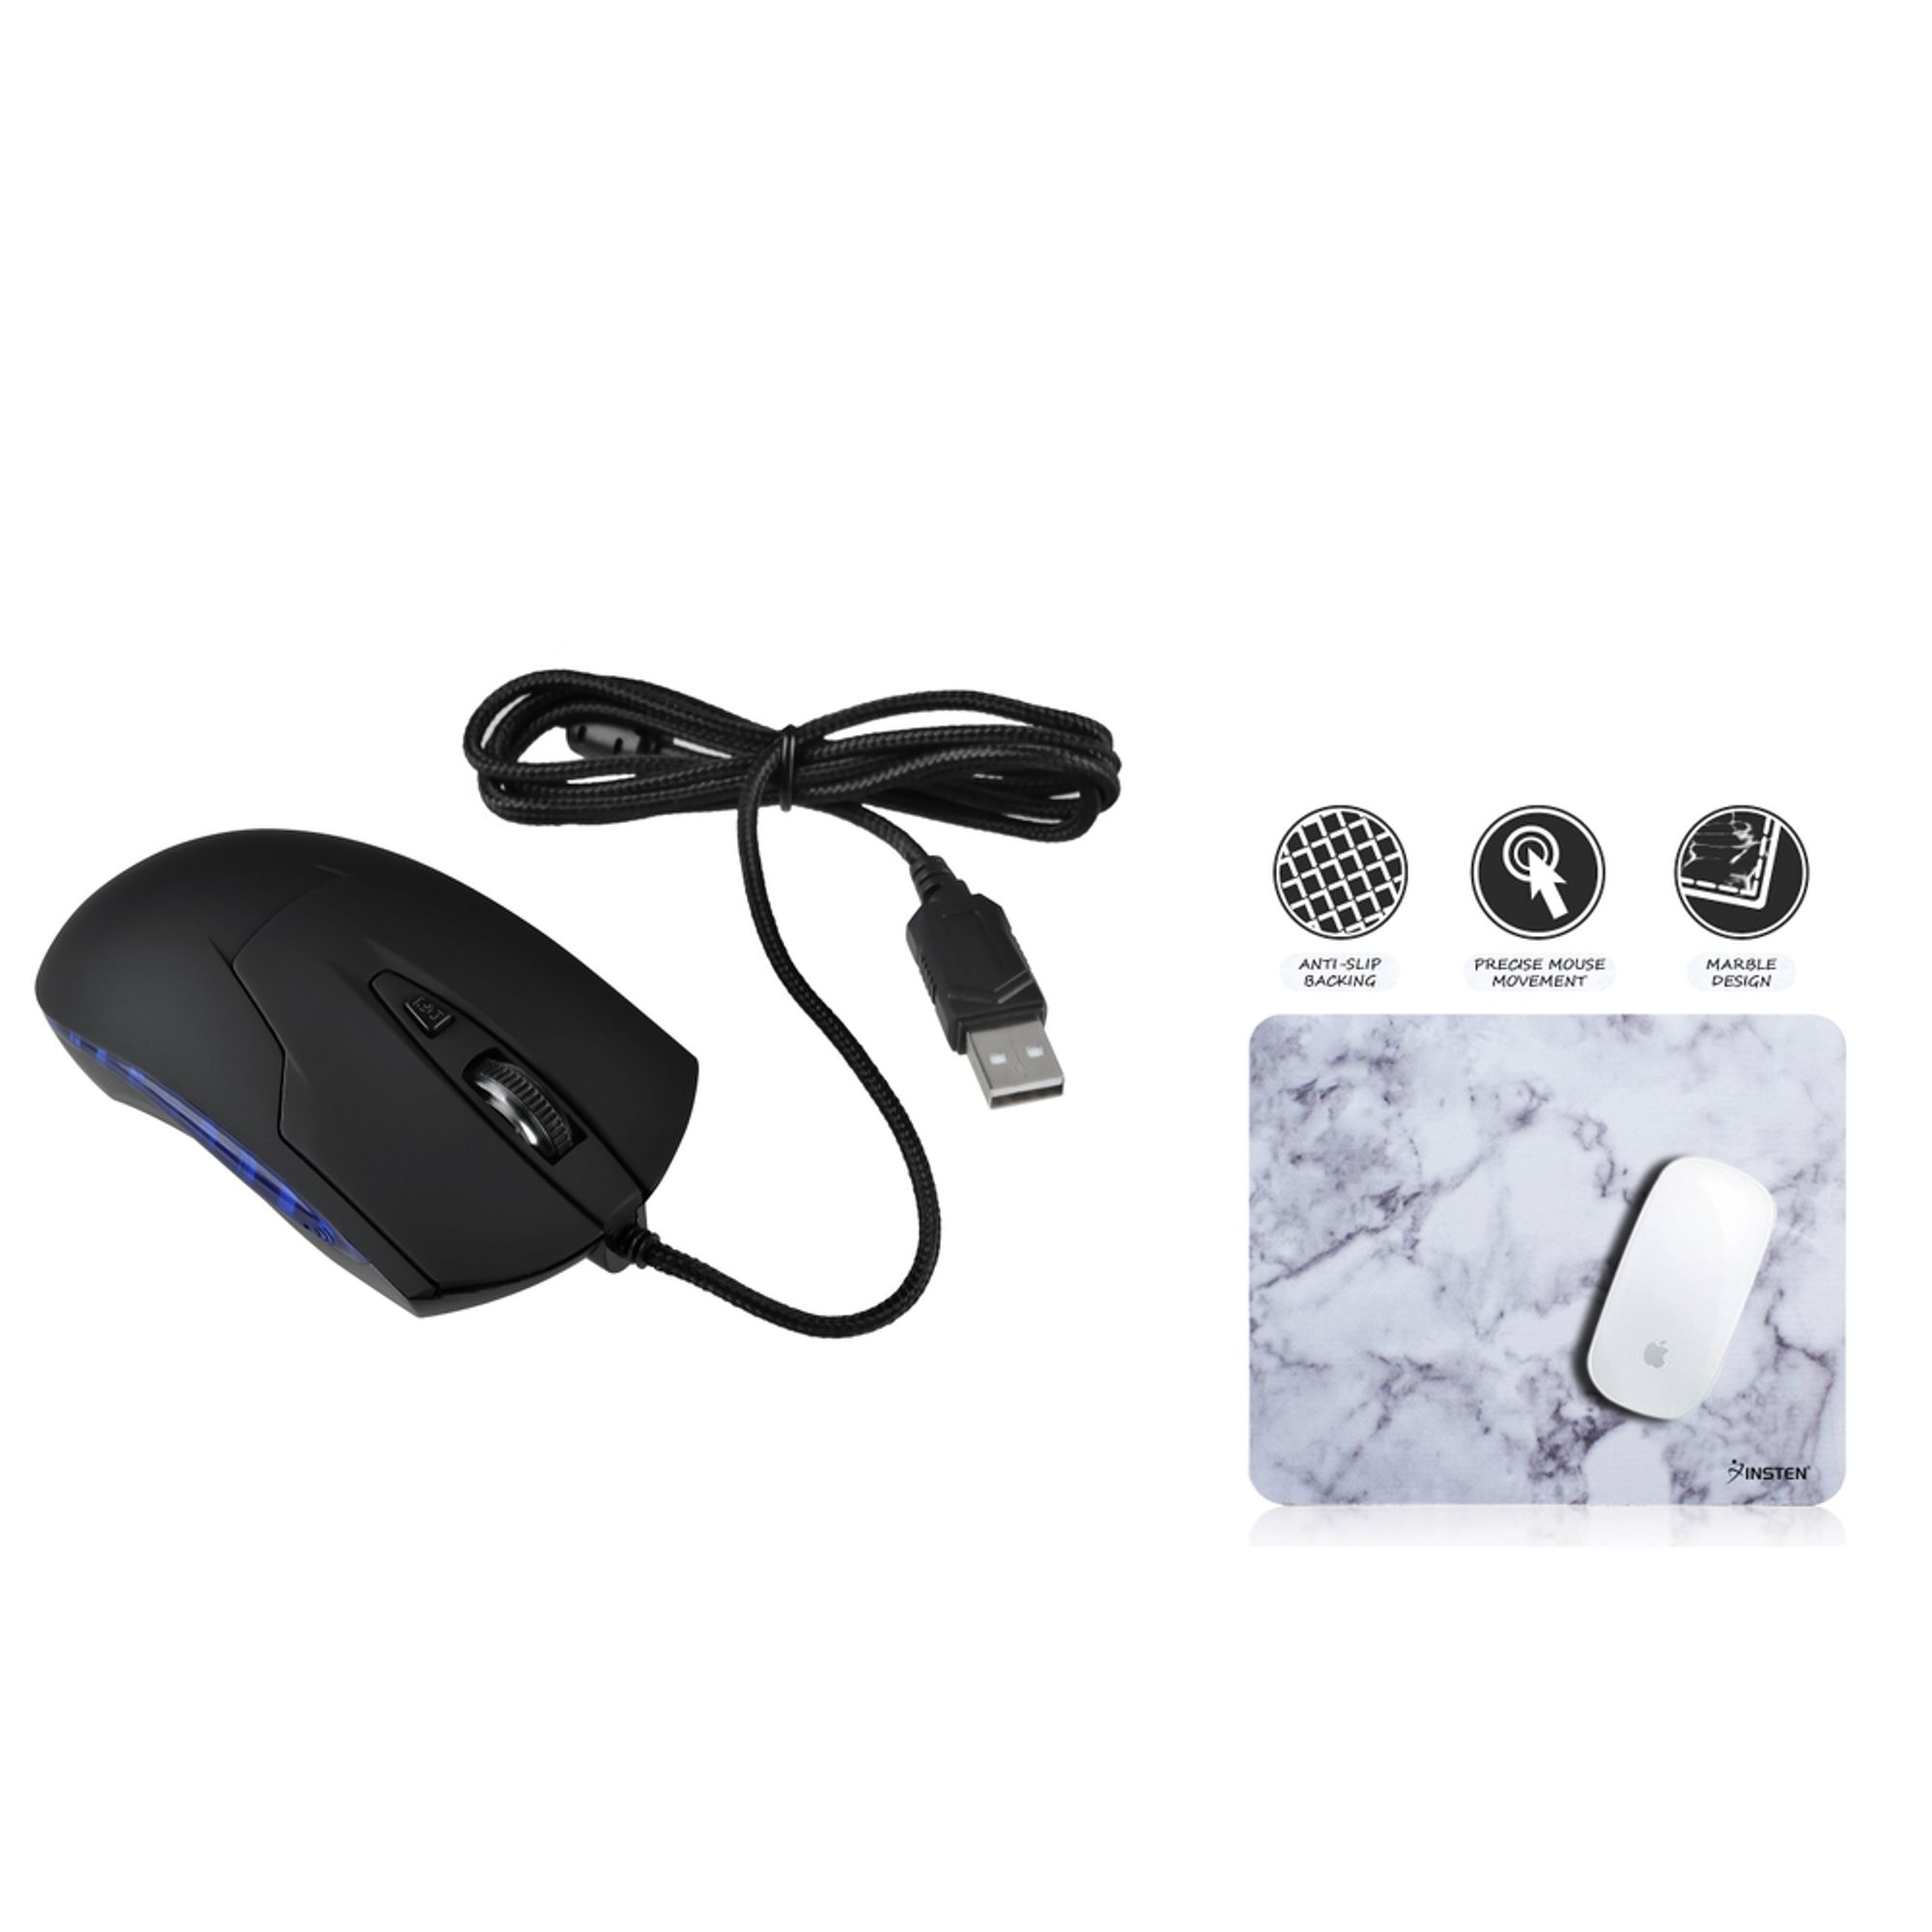 Wired Optical Mouse by Insten Black USB Optical Blue LED Wired Game Mouse + White Marble Mouse Pad